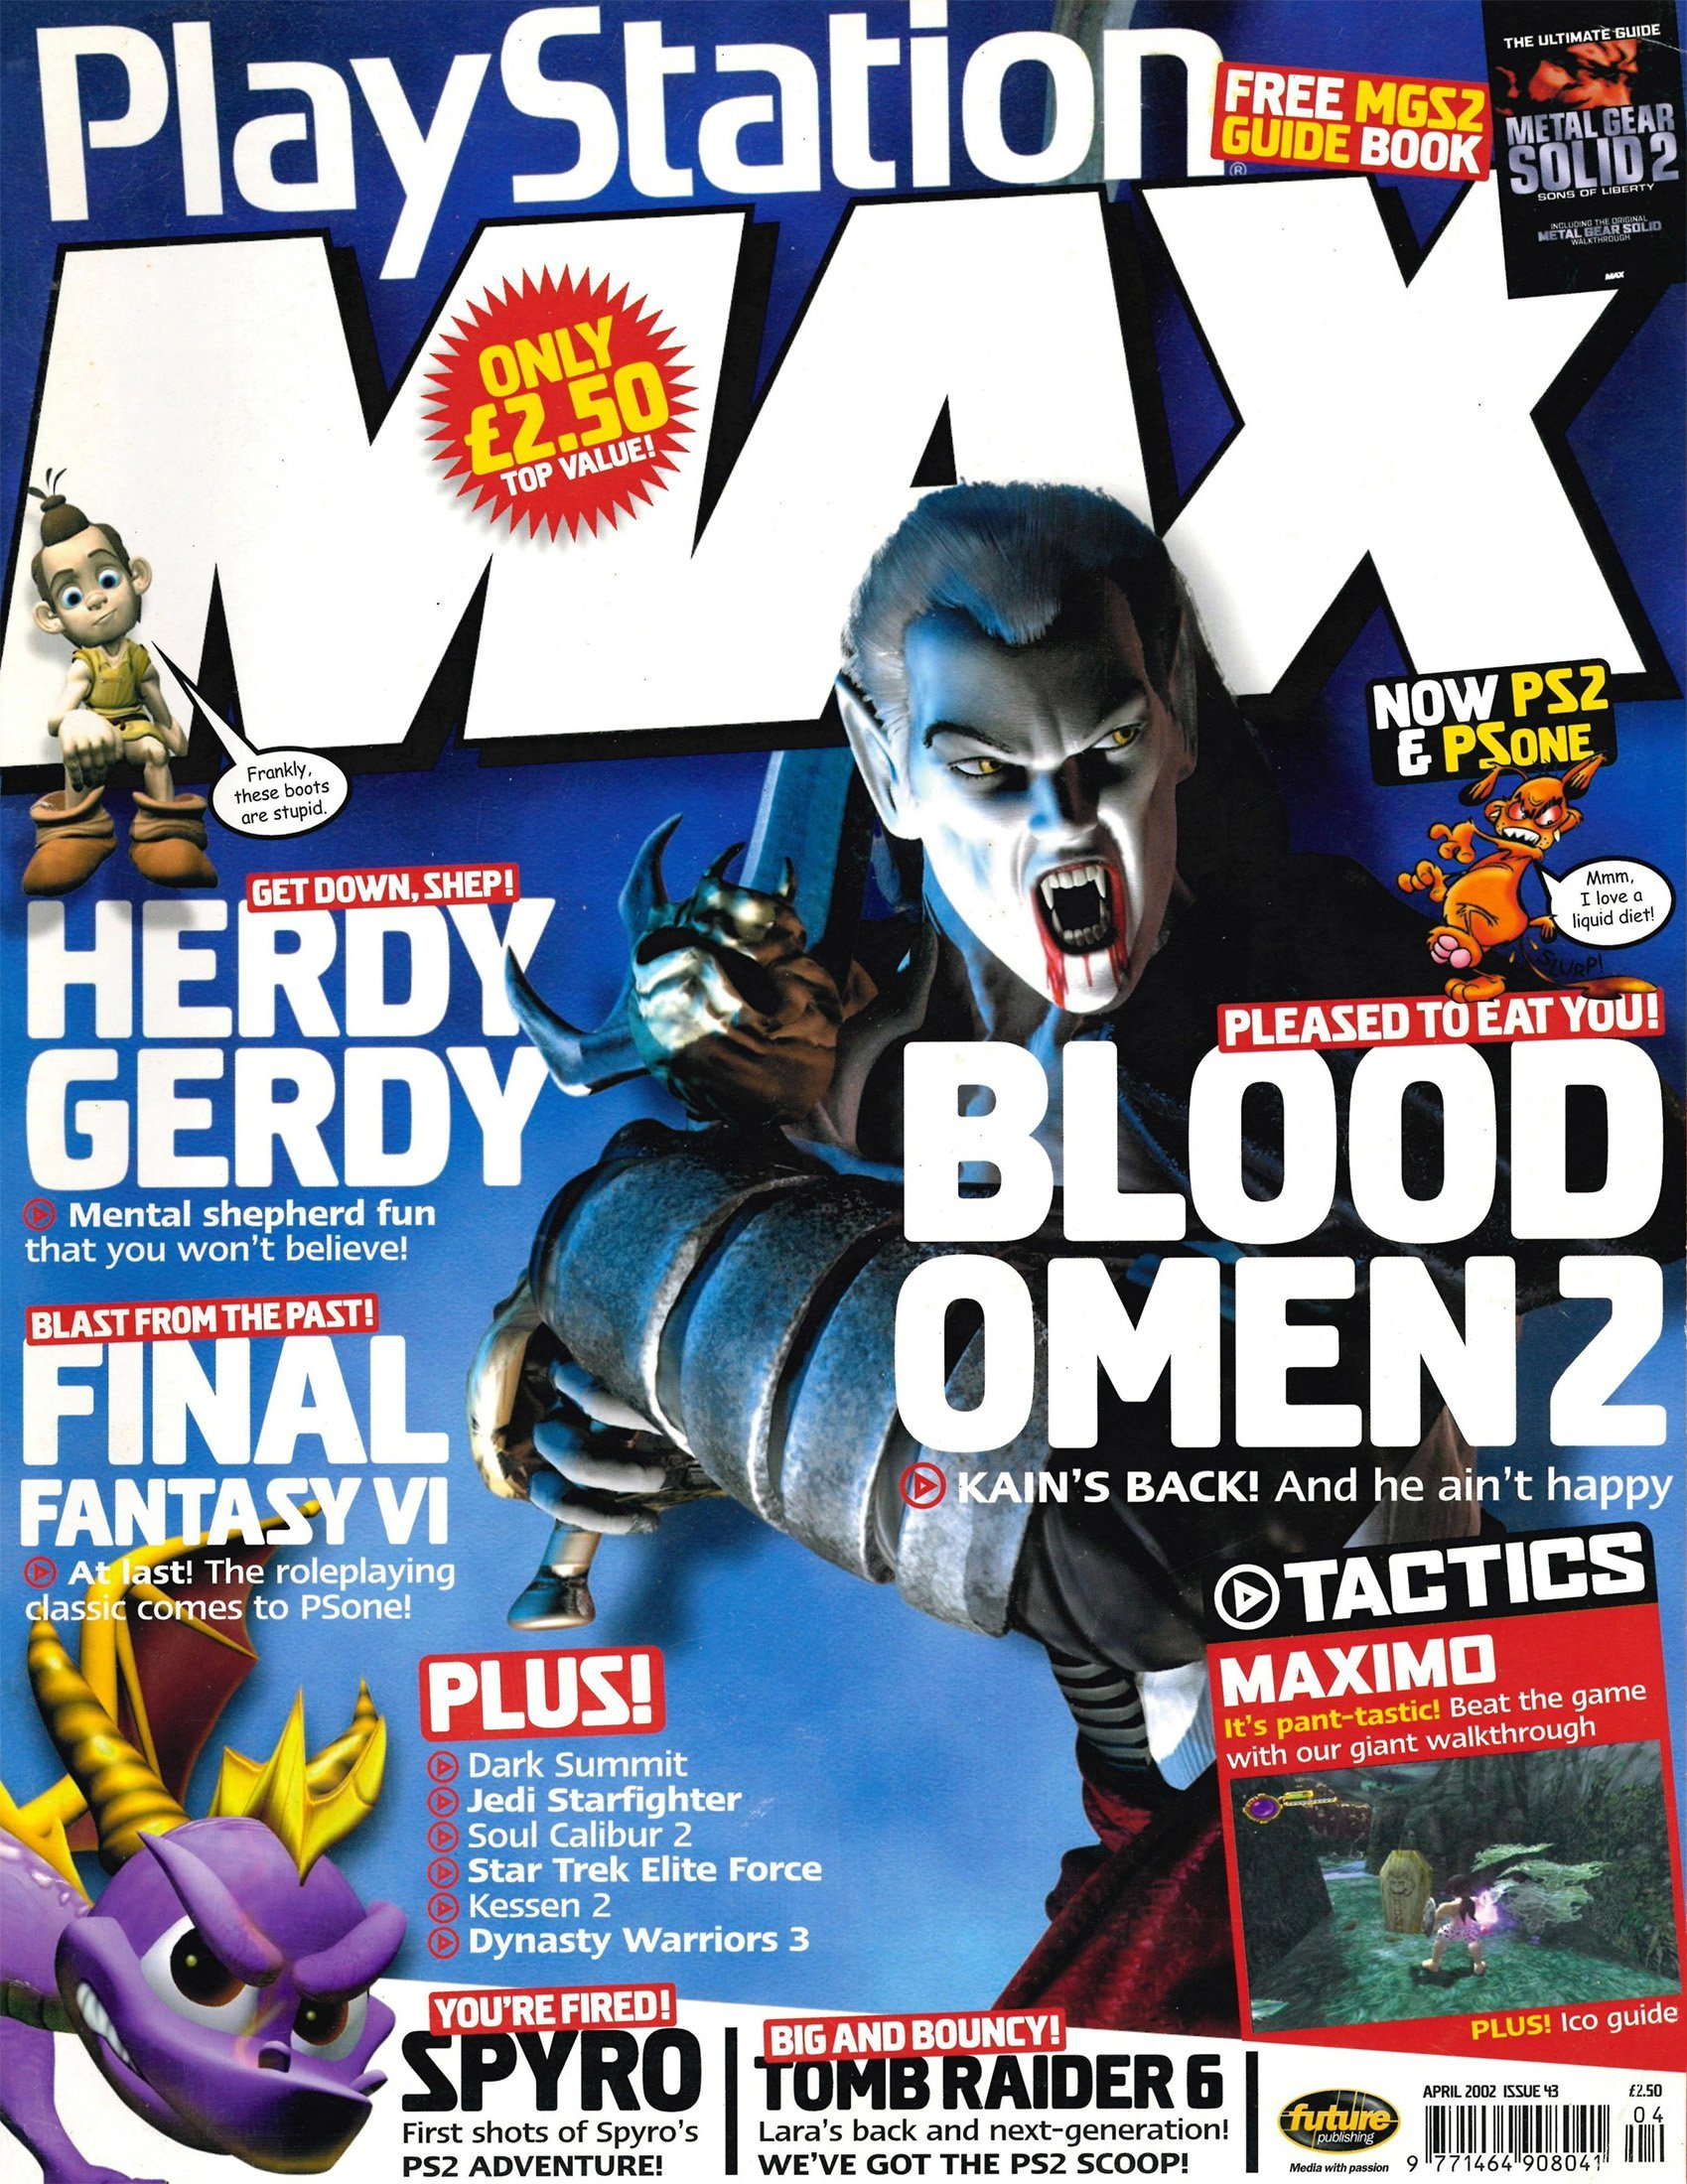 Playstation Max Issue 43 (April 2002)